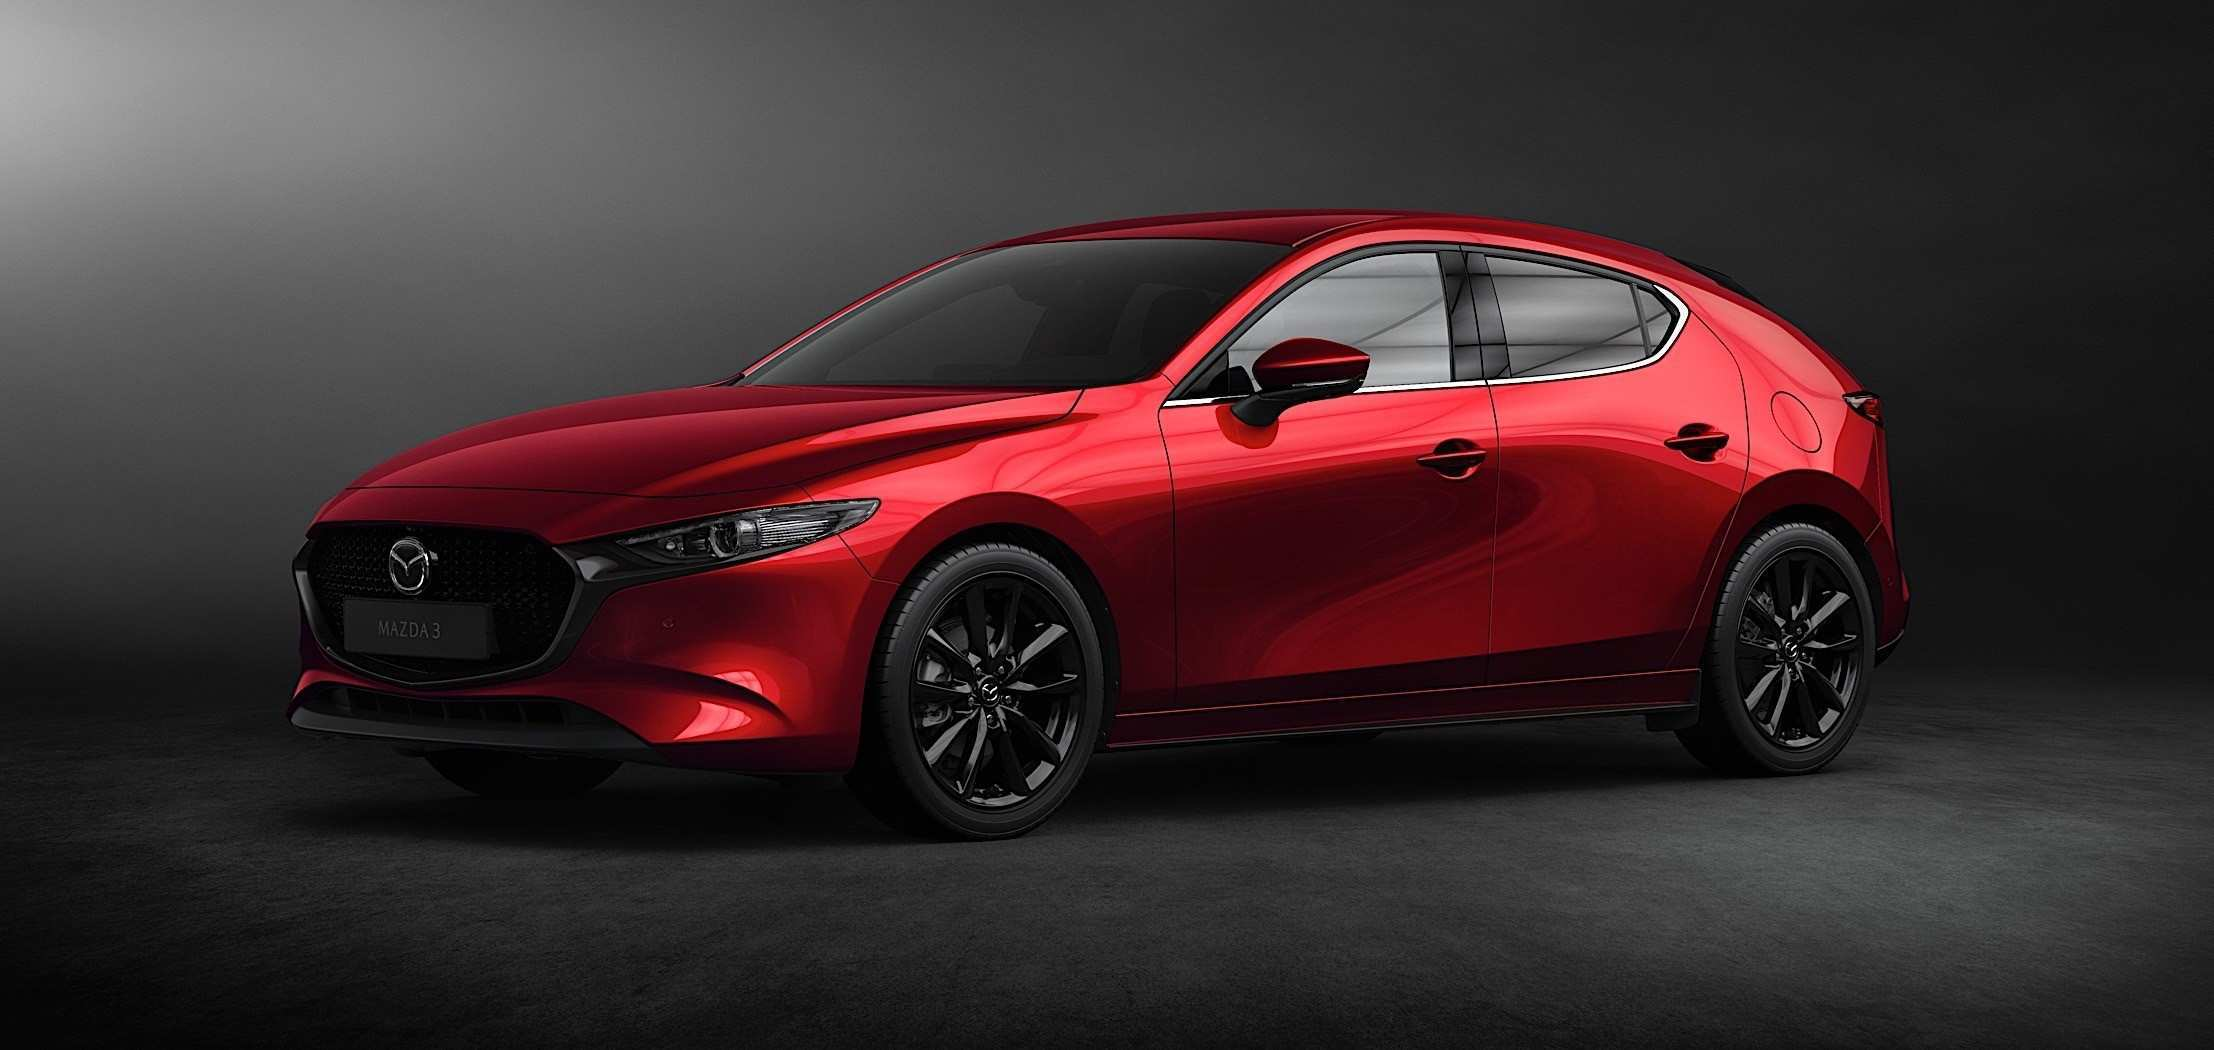 49 Concept of When Does The 2020 Mazda 3 Come Out Speed Test by When Does The 2020 Mazda 3 Come Out